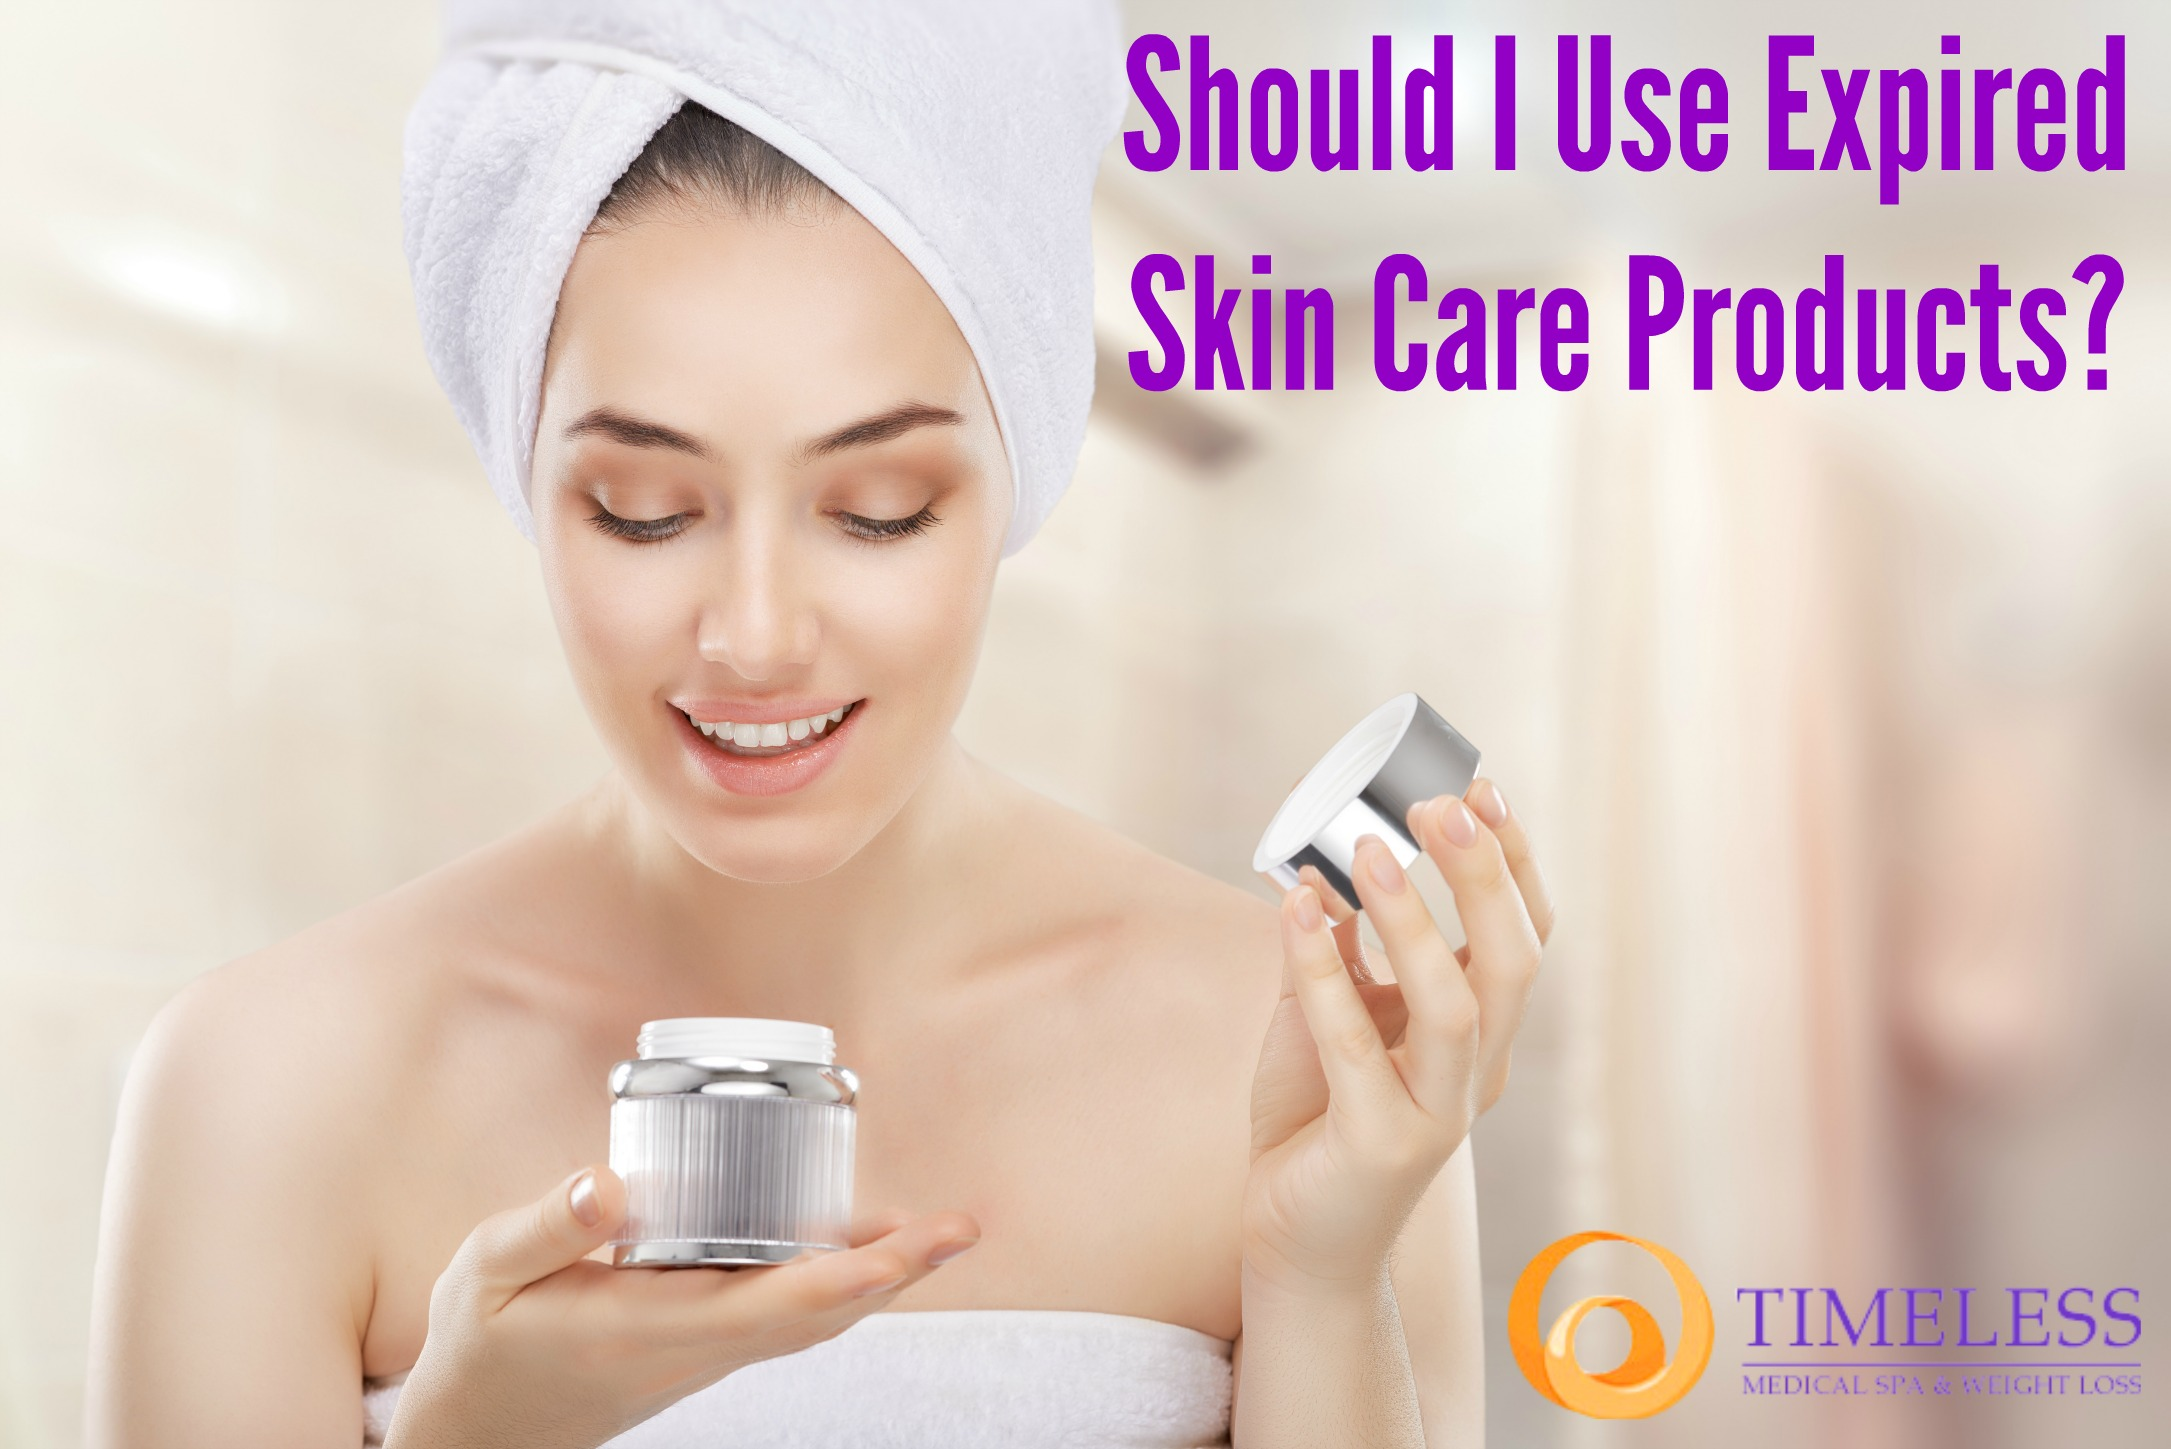 Should I Use Expired Skin Care Products?